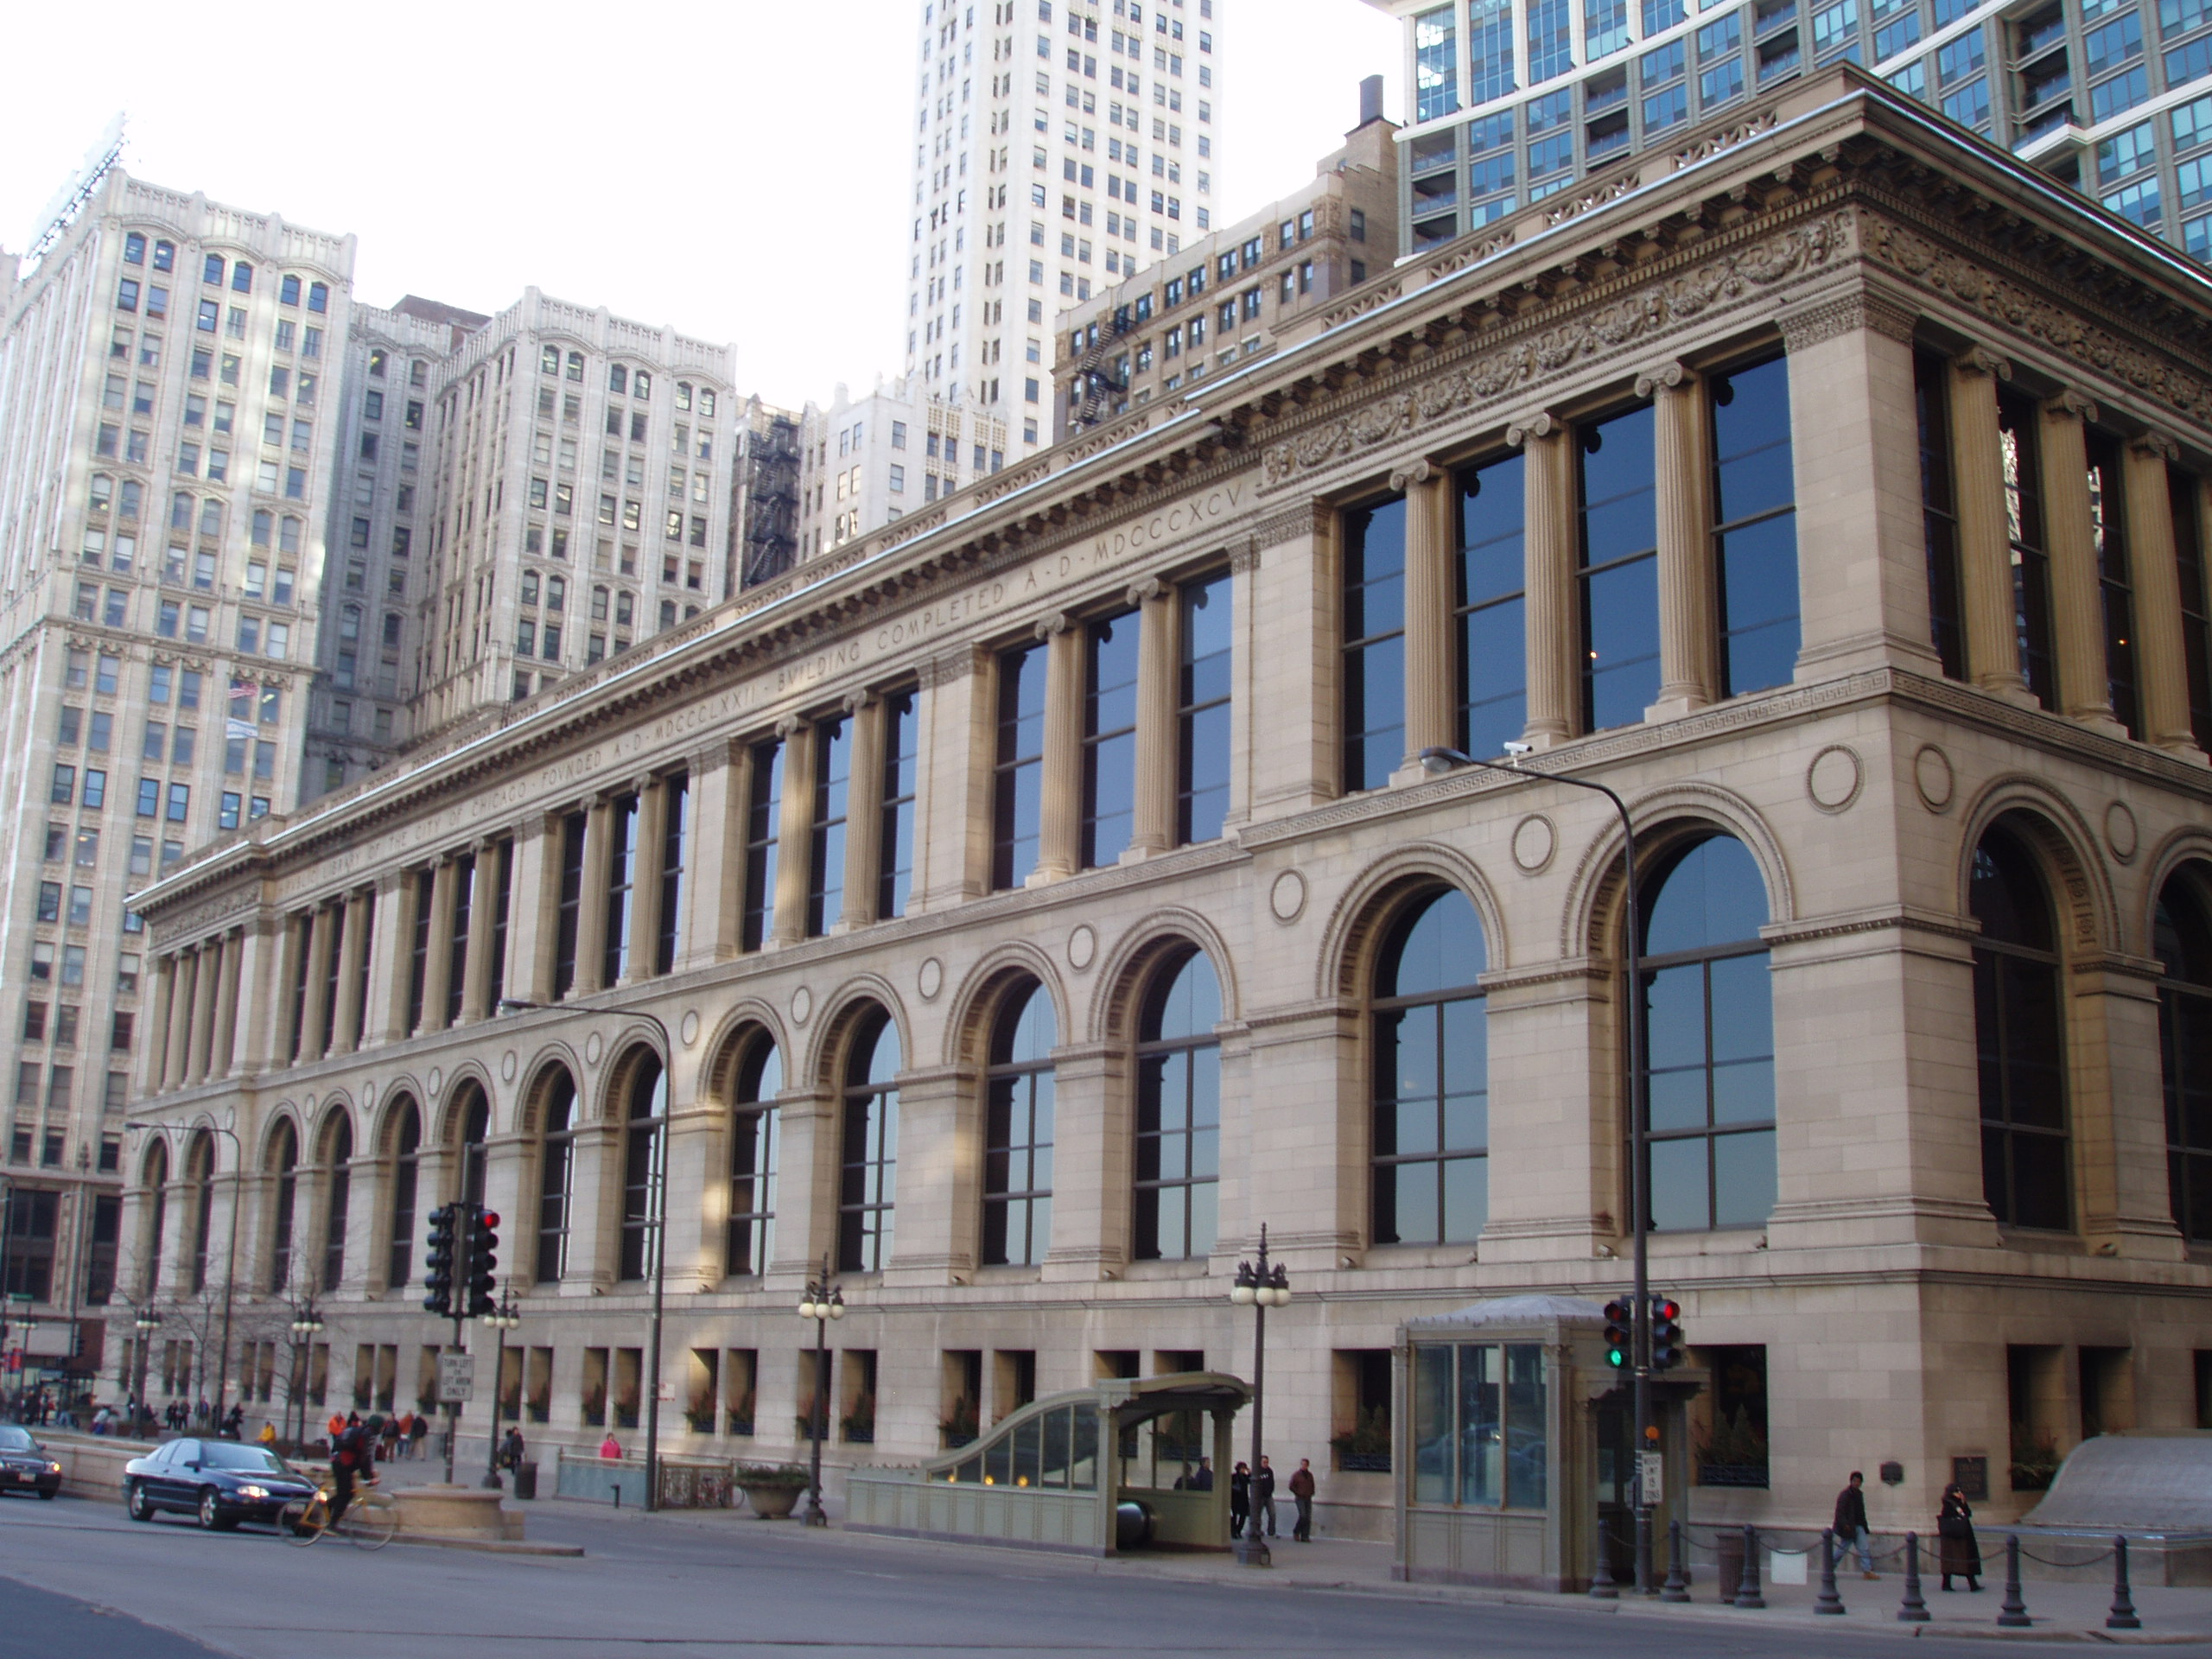 Download this Description Chicago Cultural Center picture